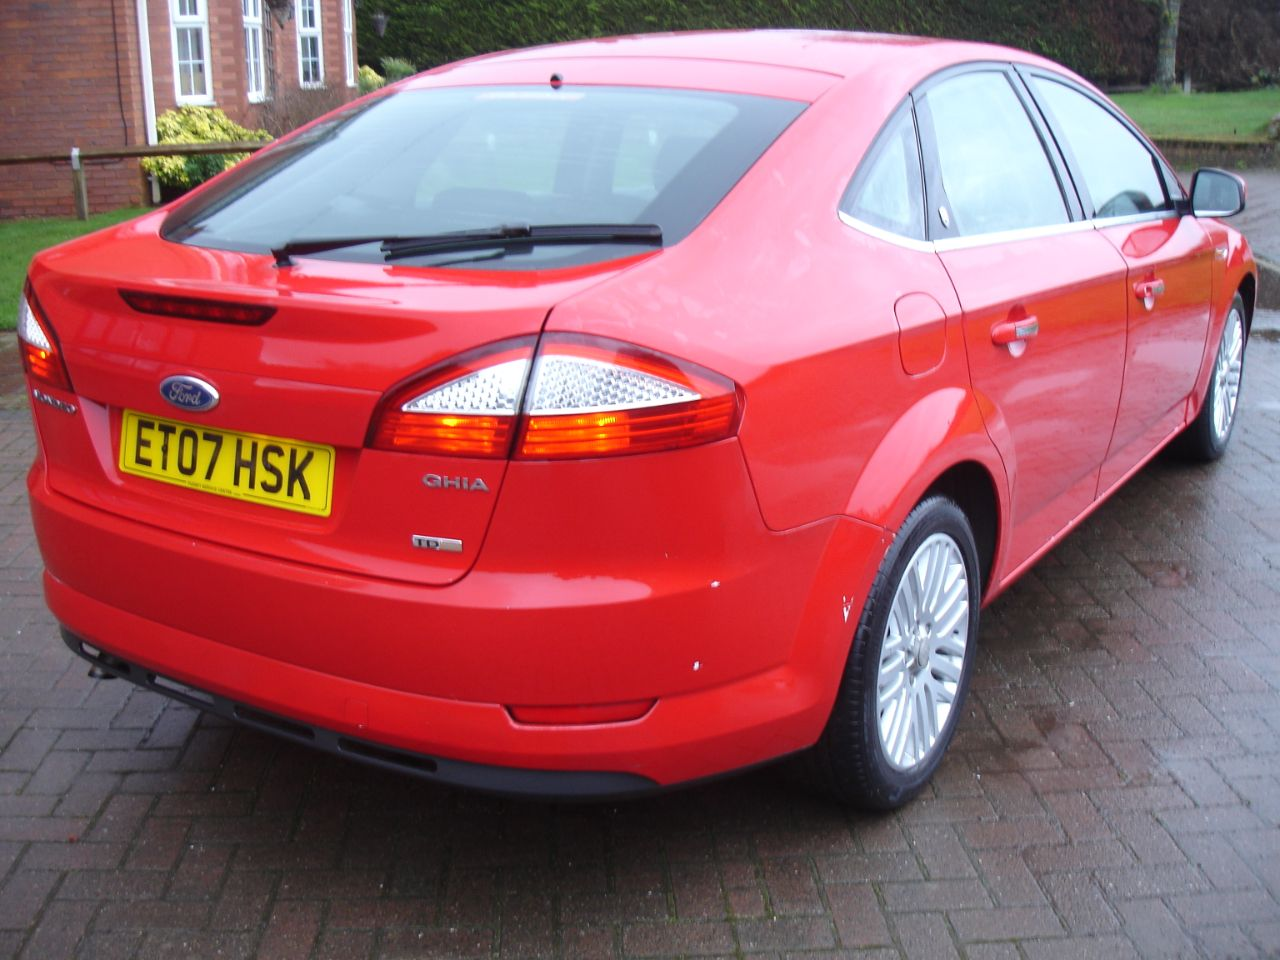 2007 Ford Mondeo 2.0 TDCi Ghia 140ps 6 speed 5dr